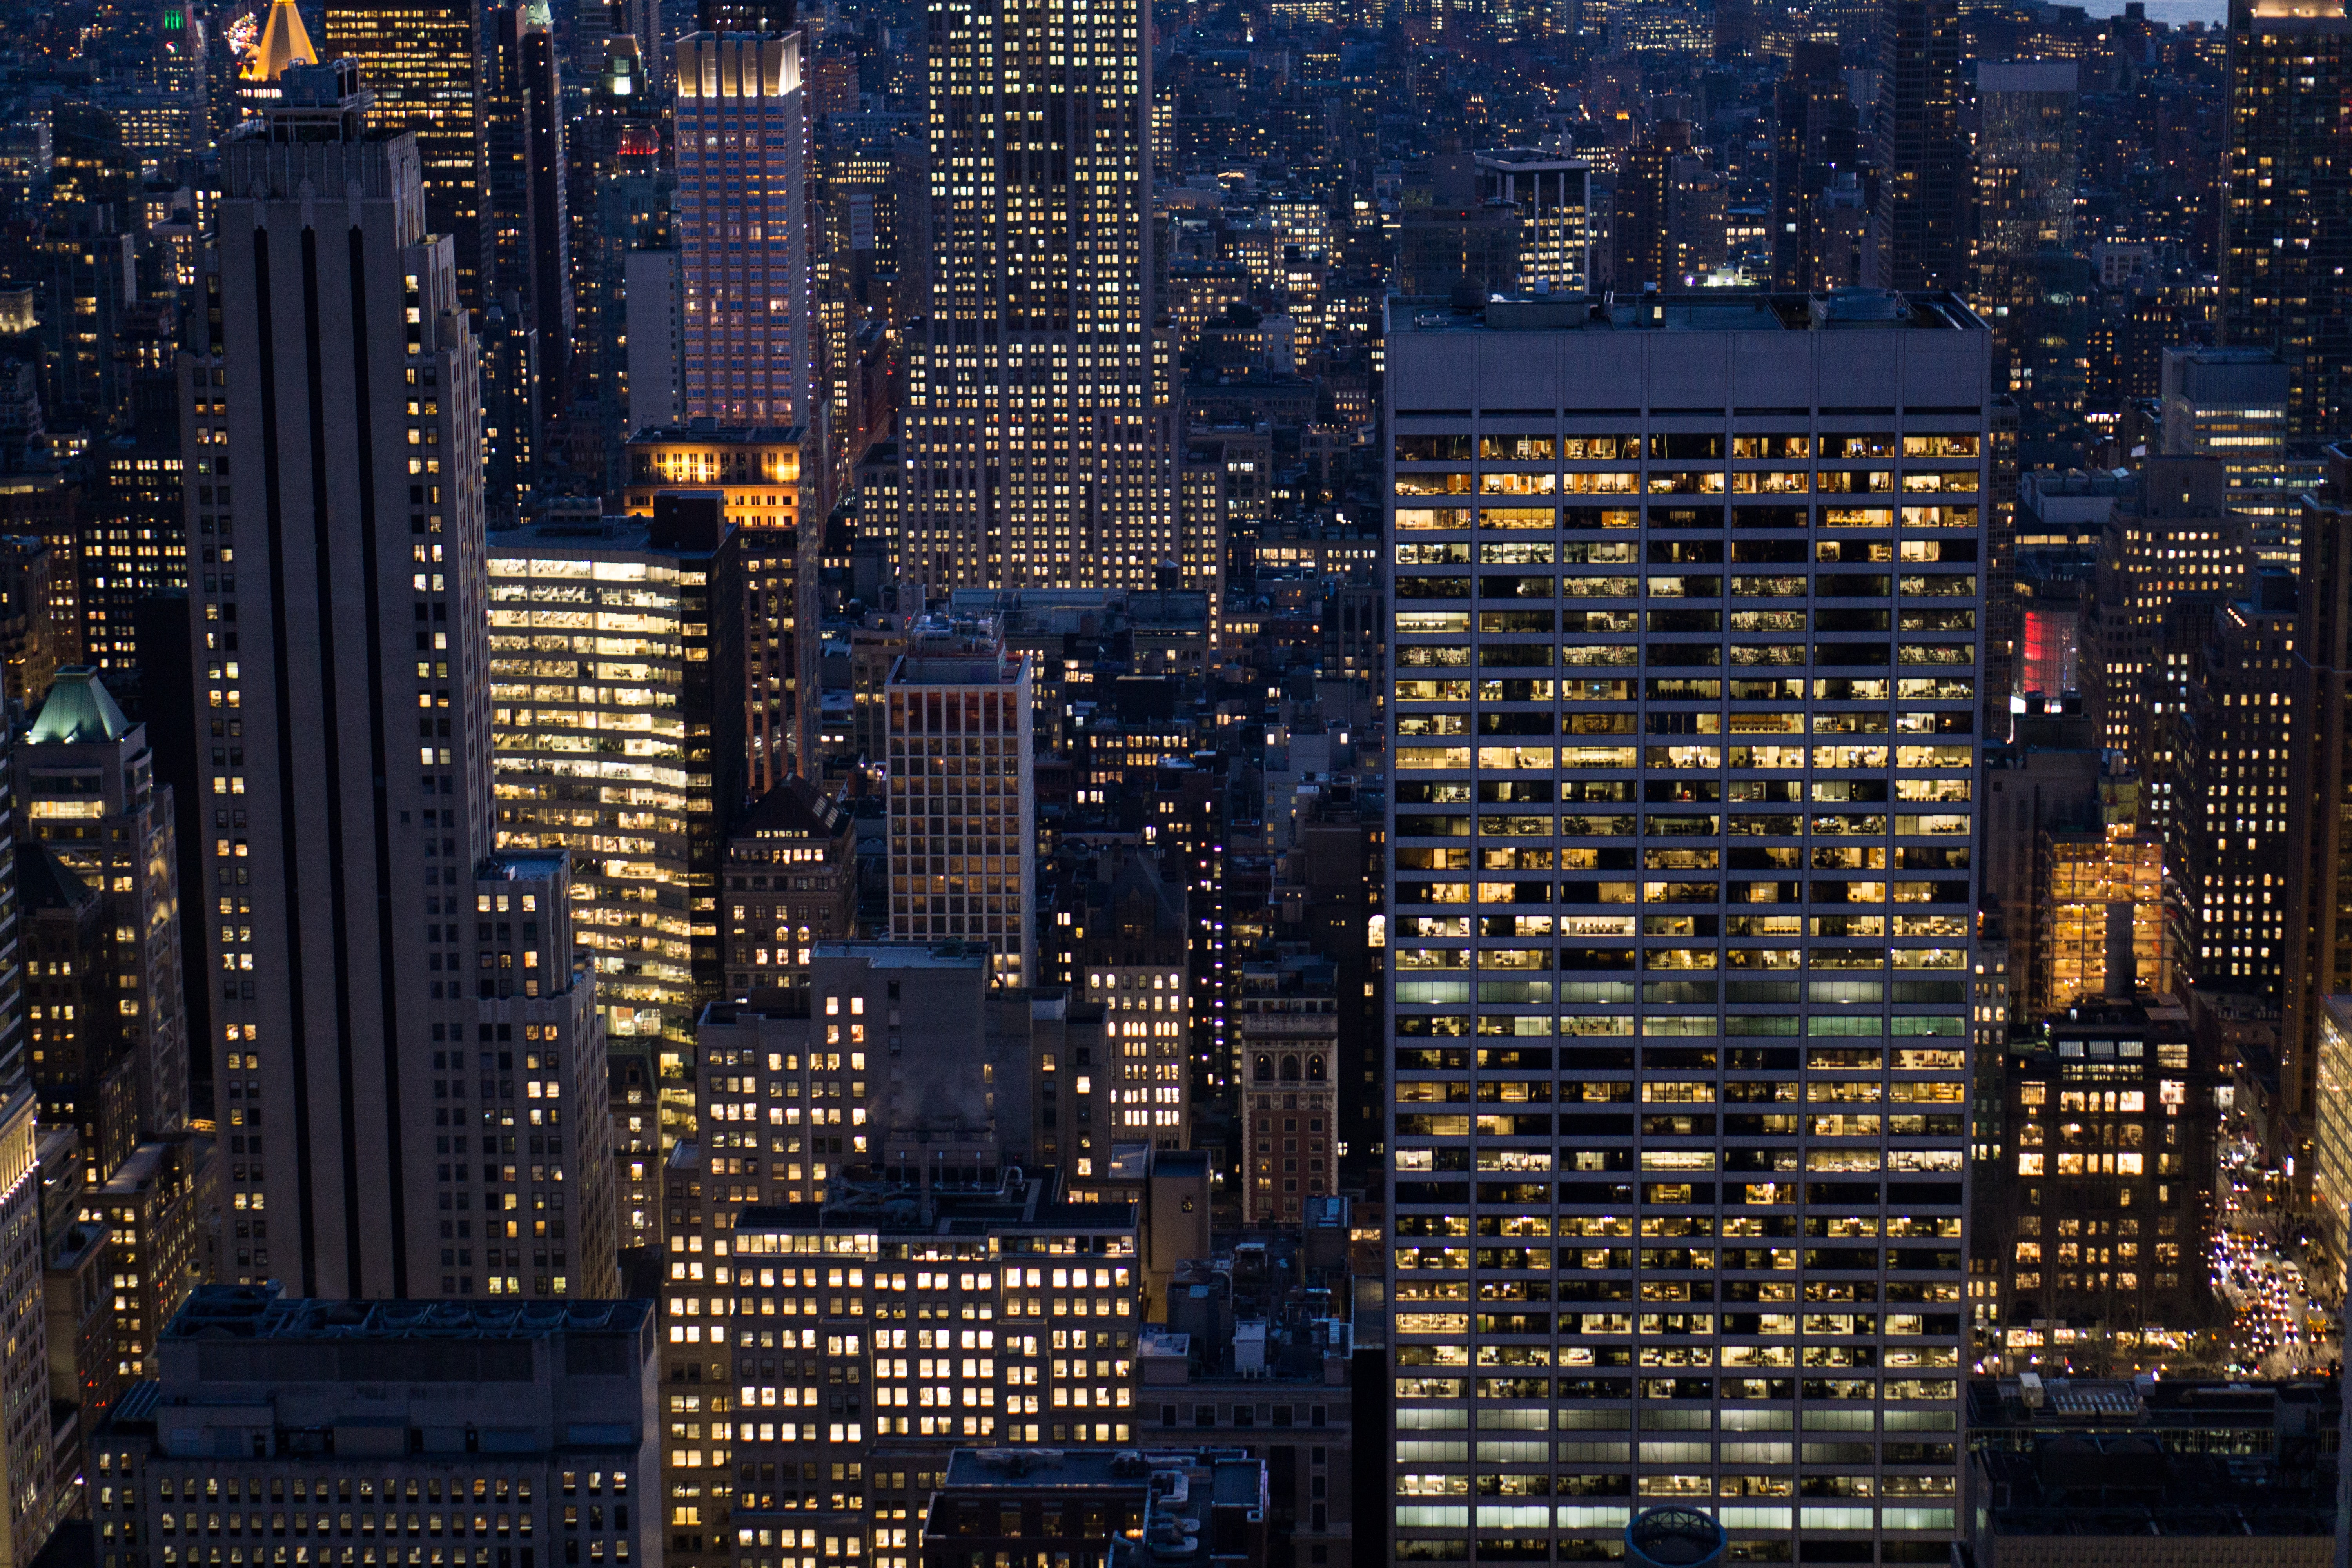 aerial photo of a lighted city buildings